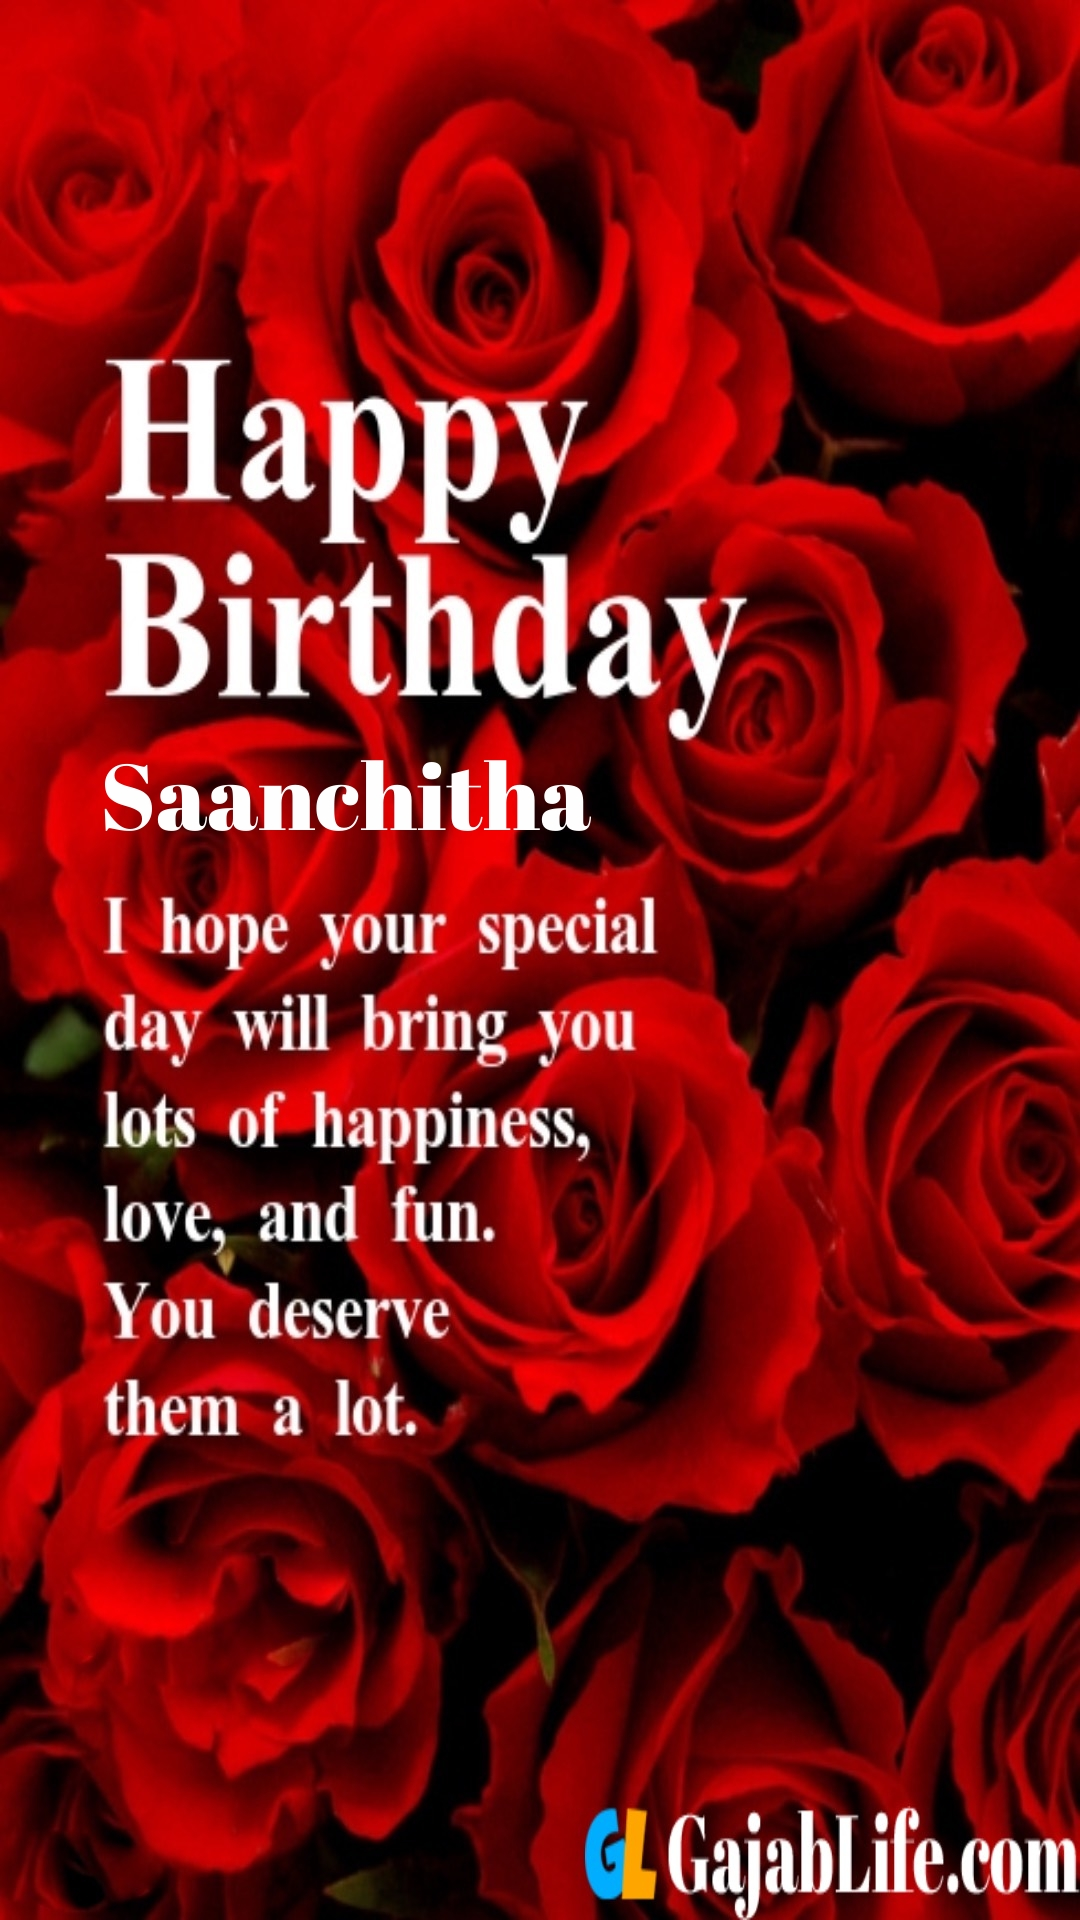 Saanchitha birthday greeting card with rose & love